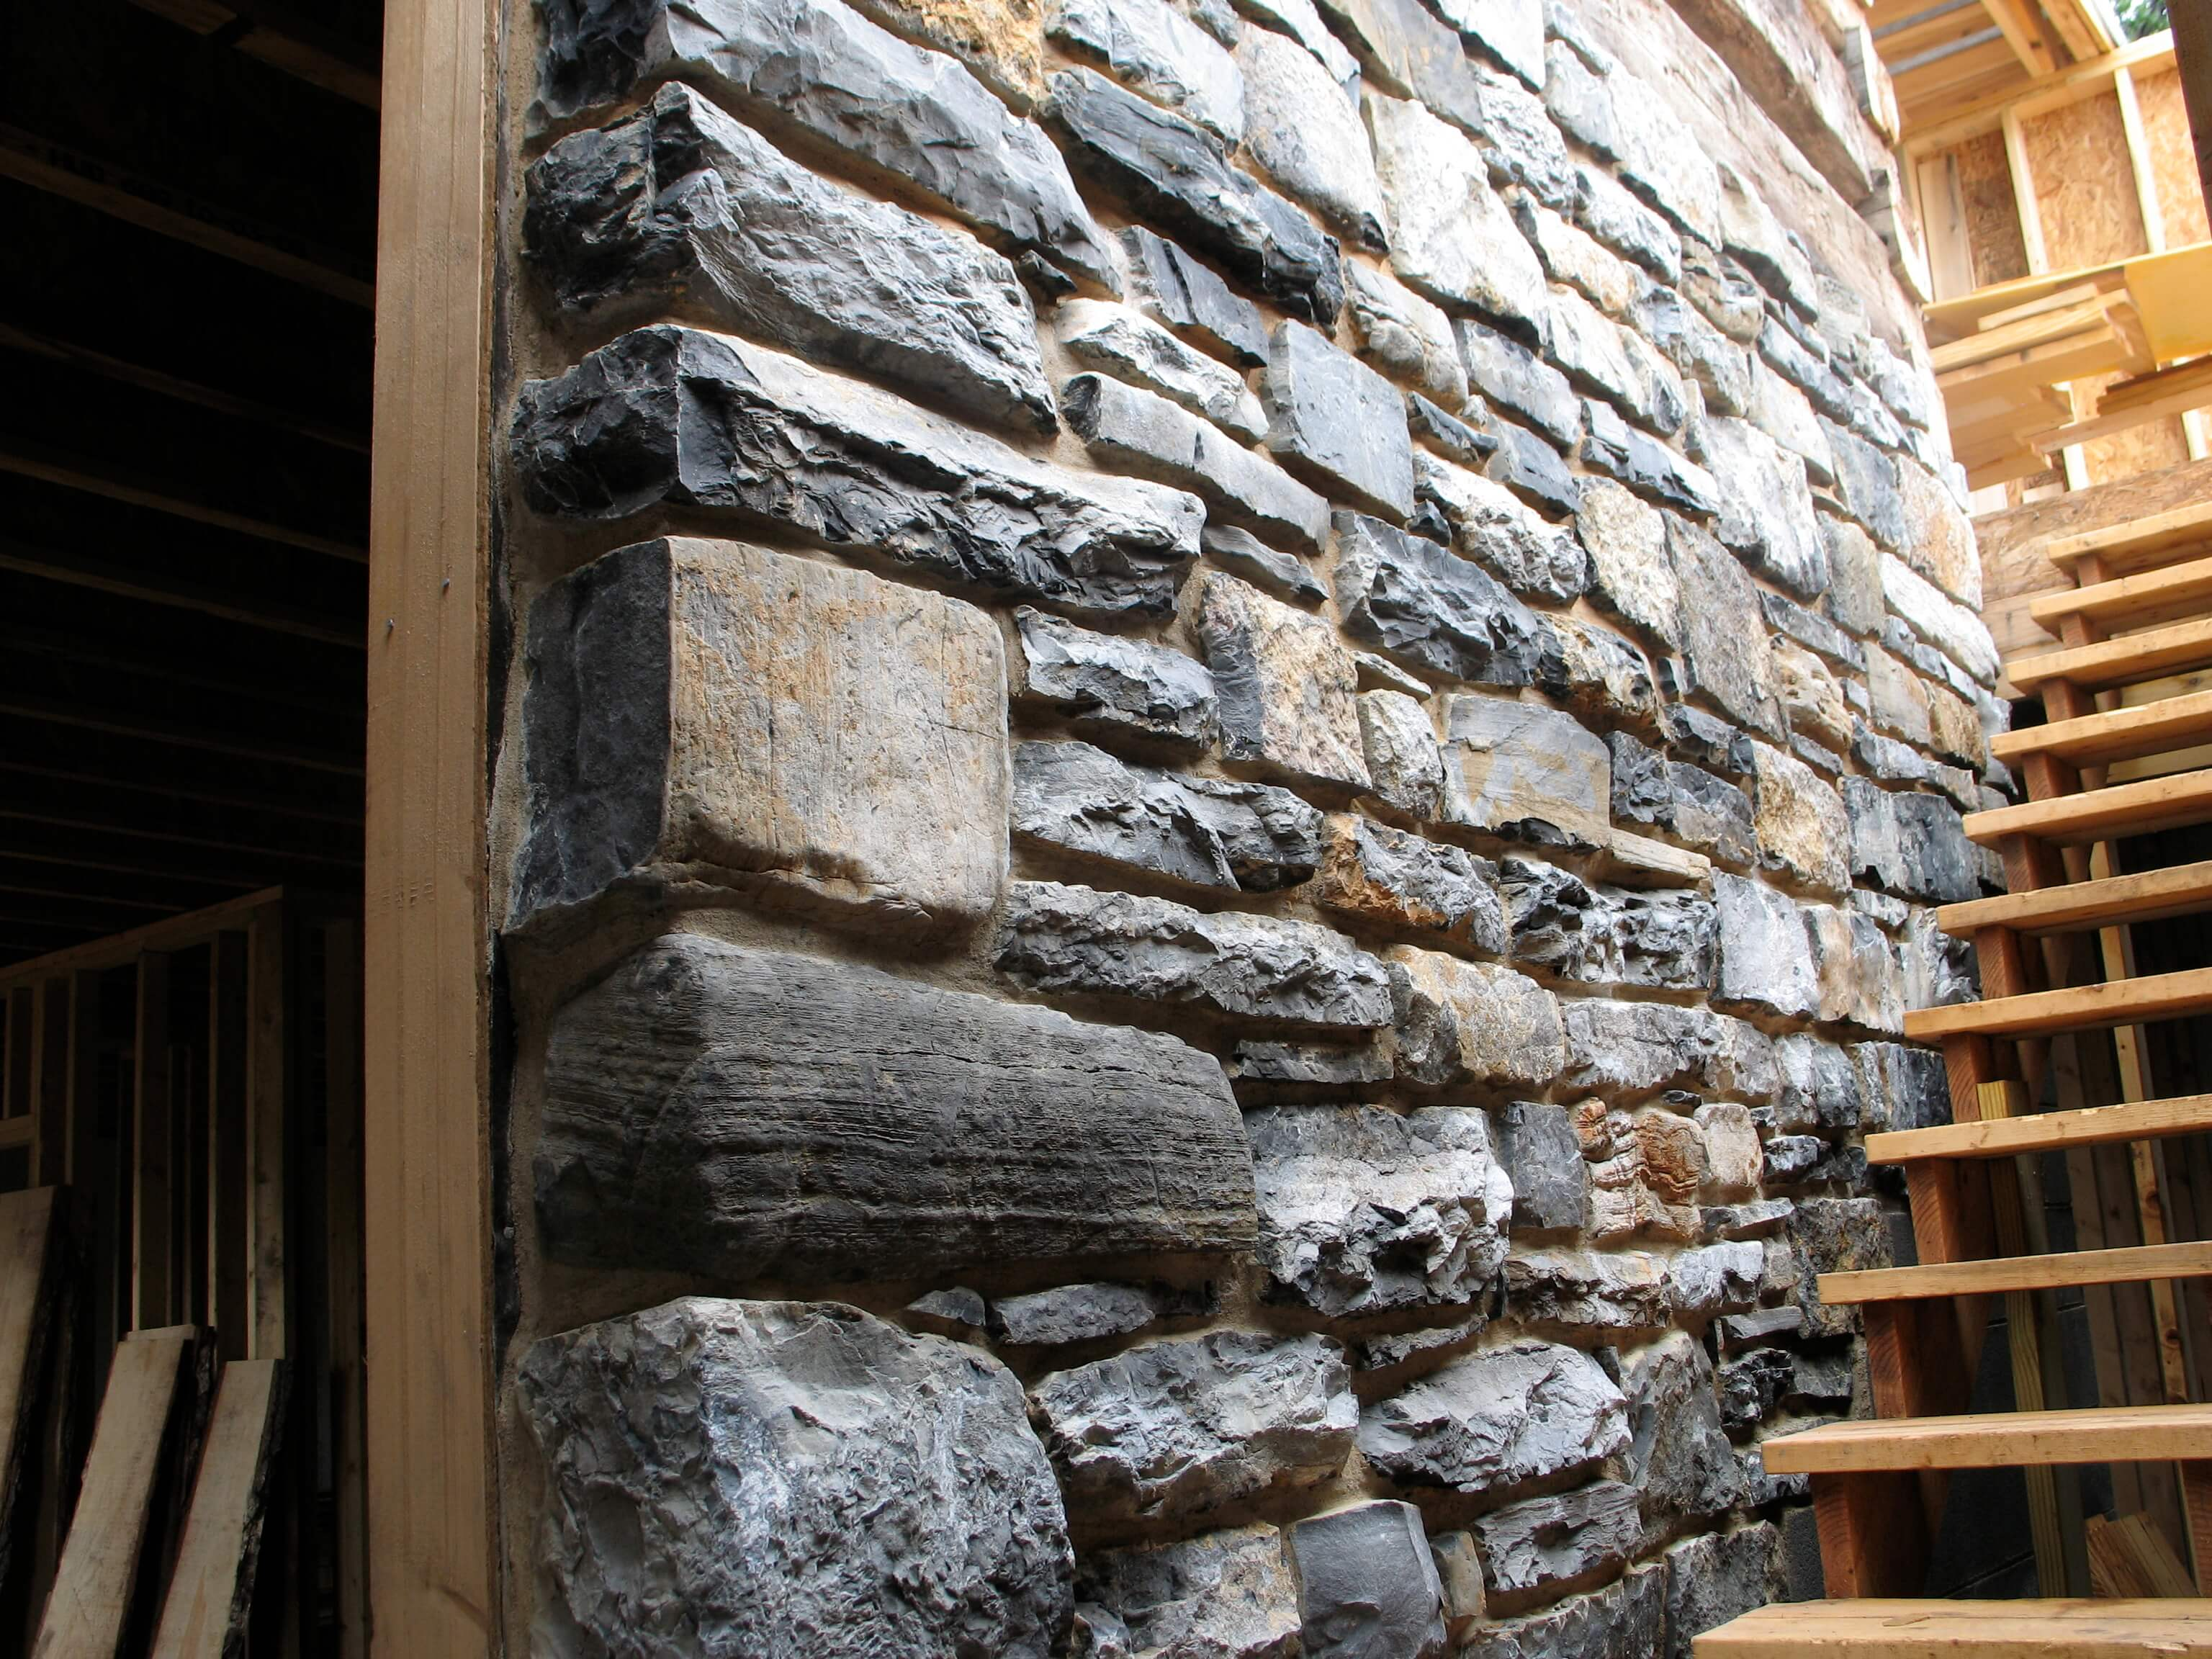 Inside Stone Walls 3 Stunning Displays Of Interior Stone Wall Design